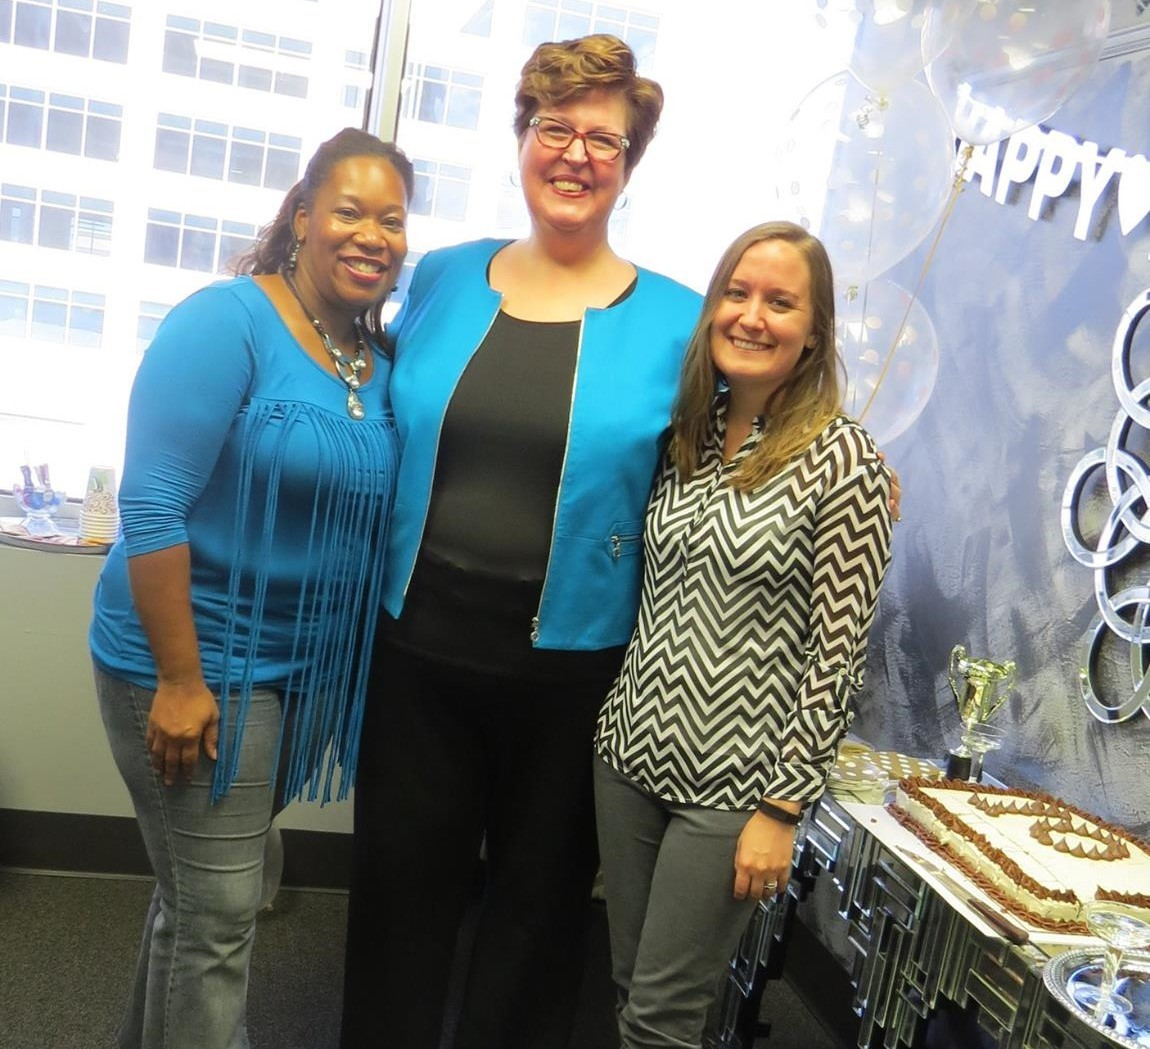 three women standing at a party with a cake